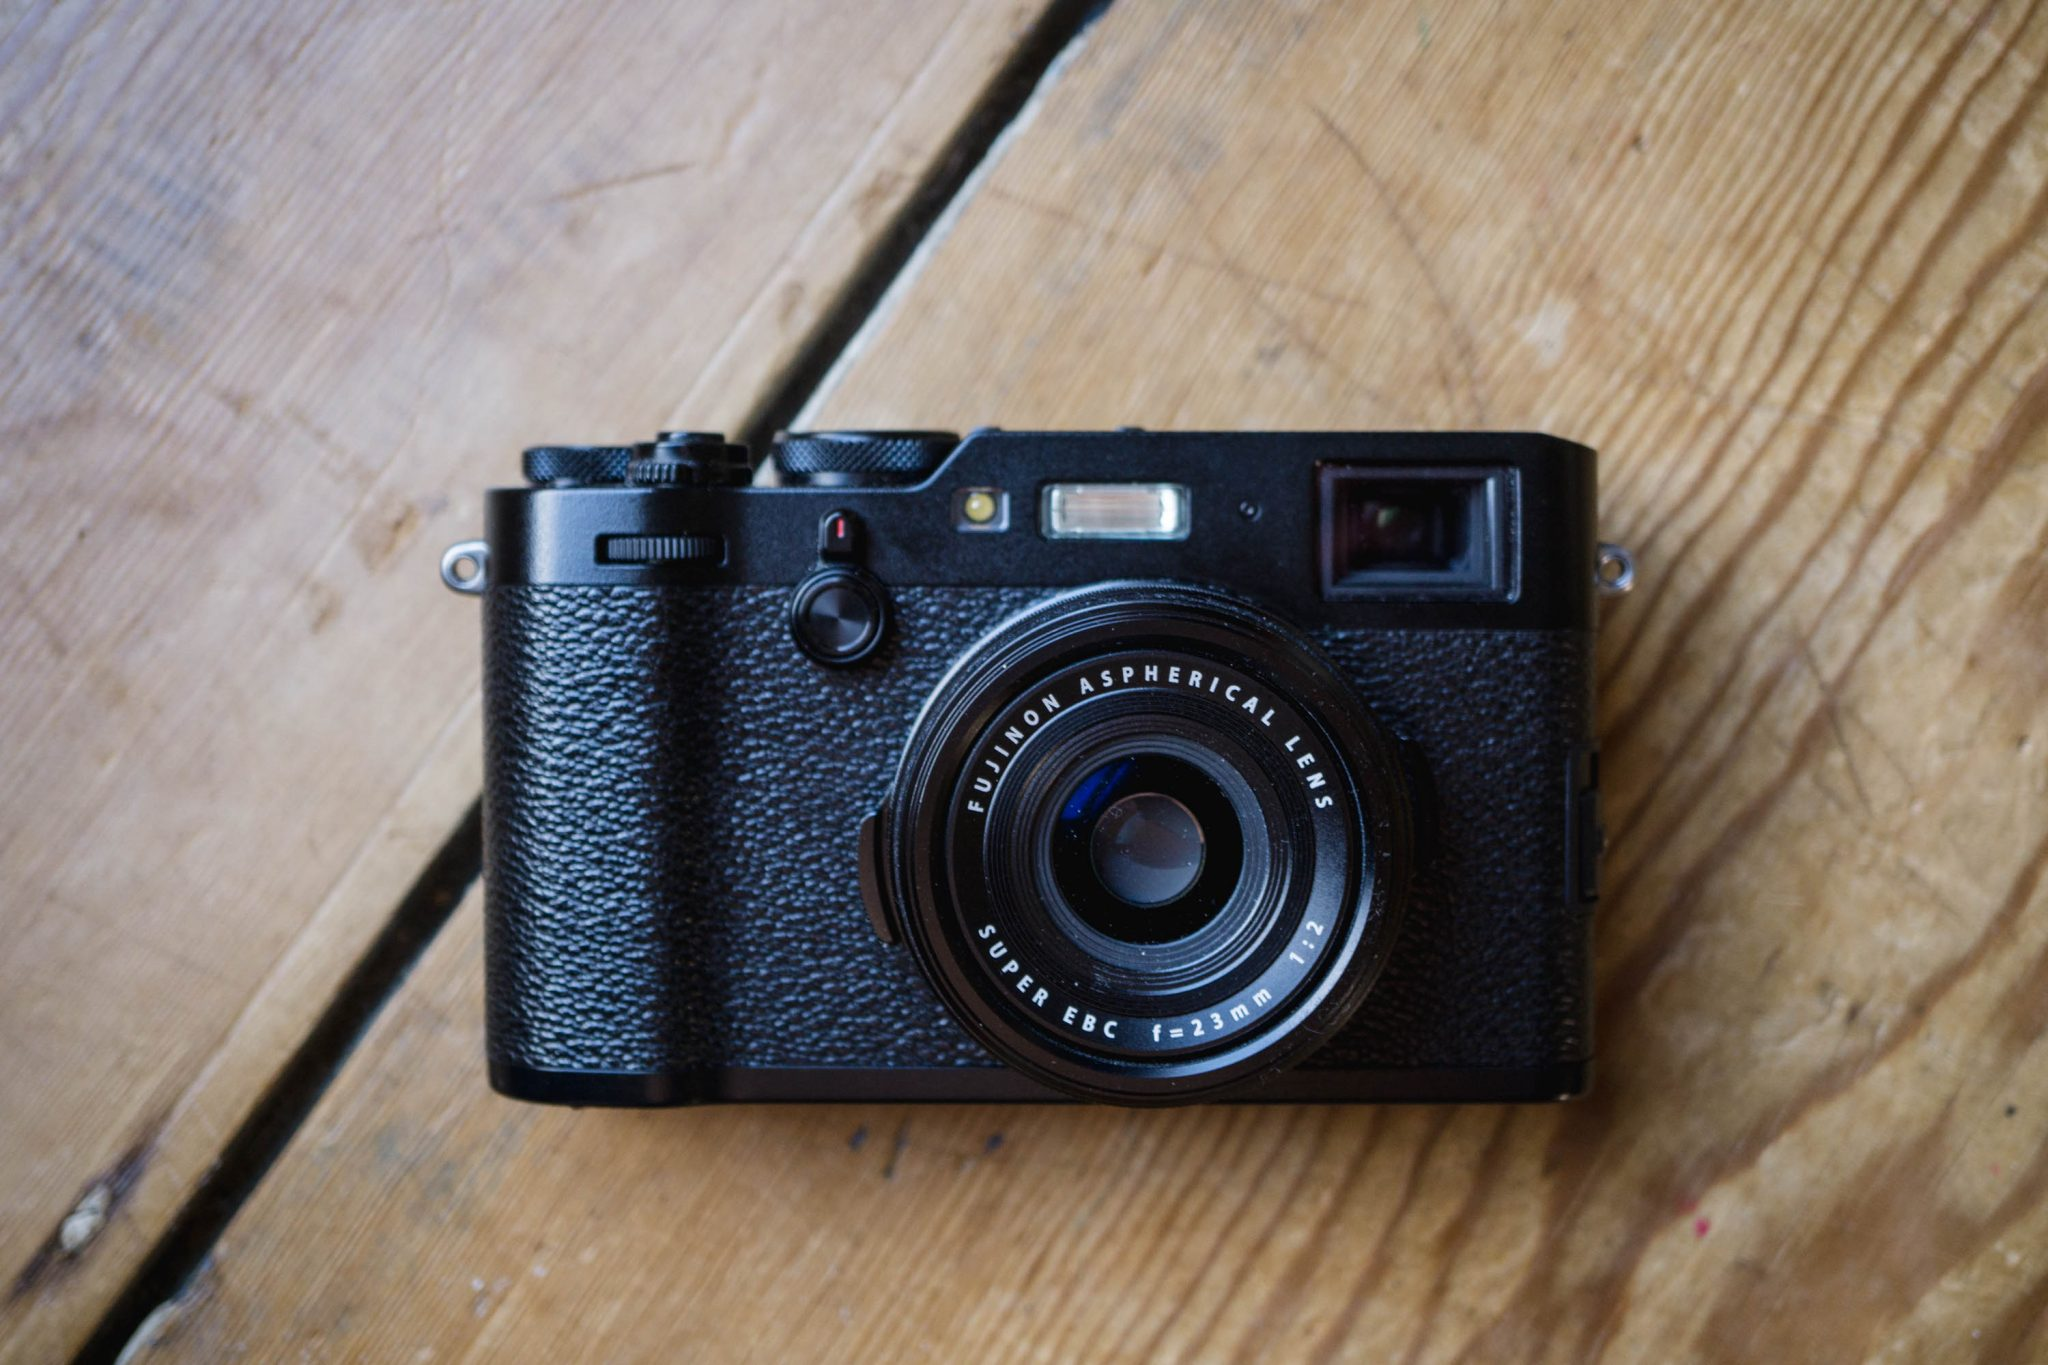 The X100f - Has Fuji lost sight of the elegant original concept? - 35mmc